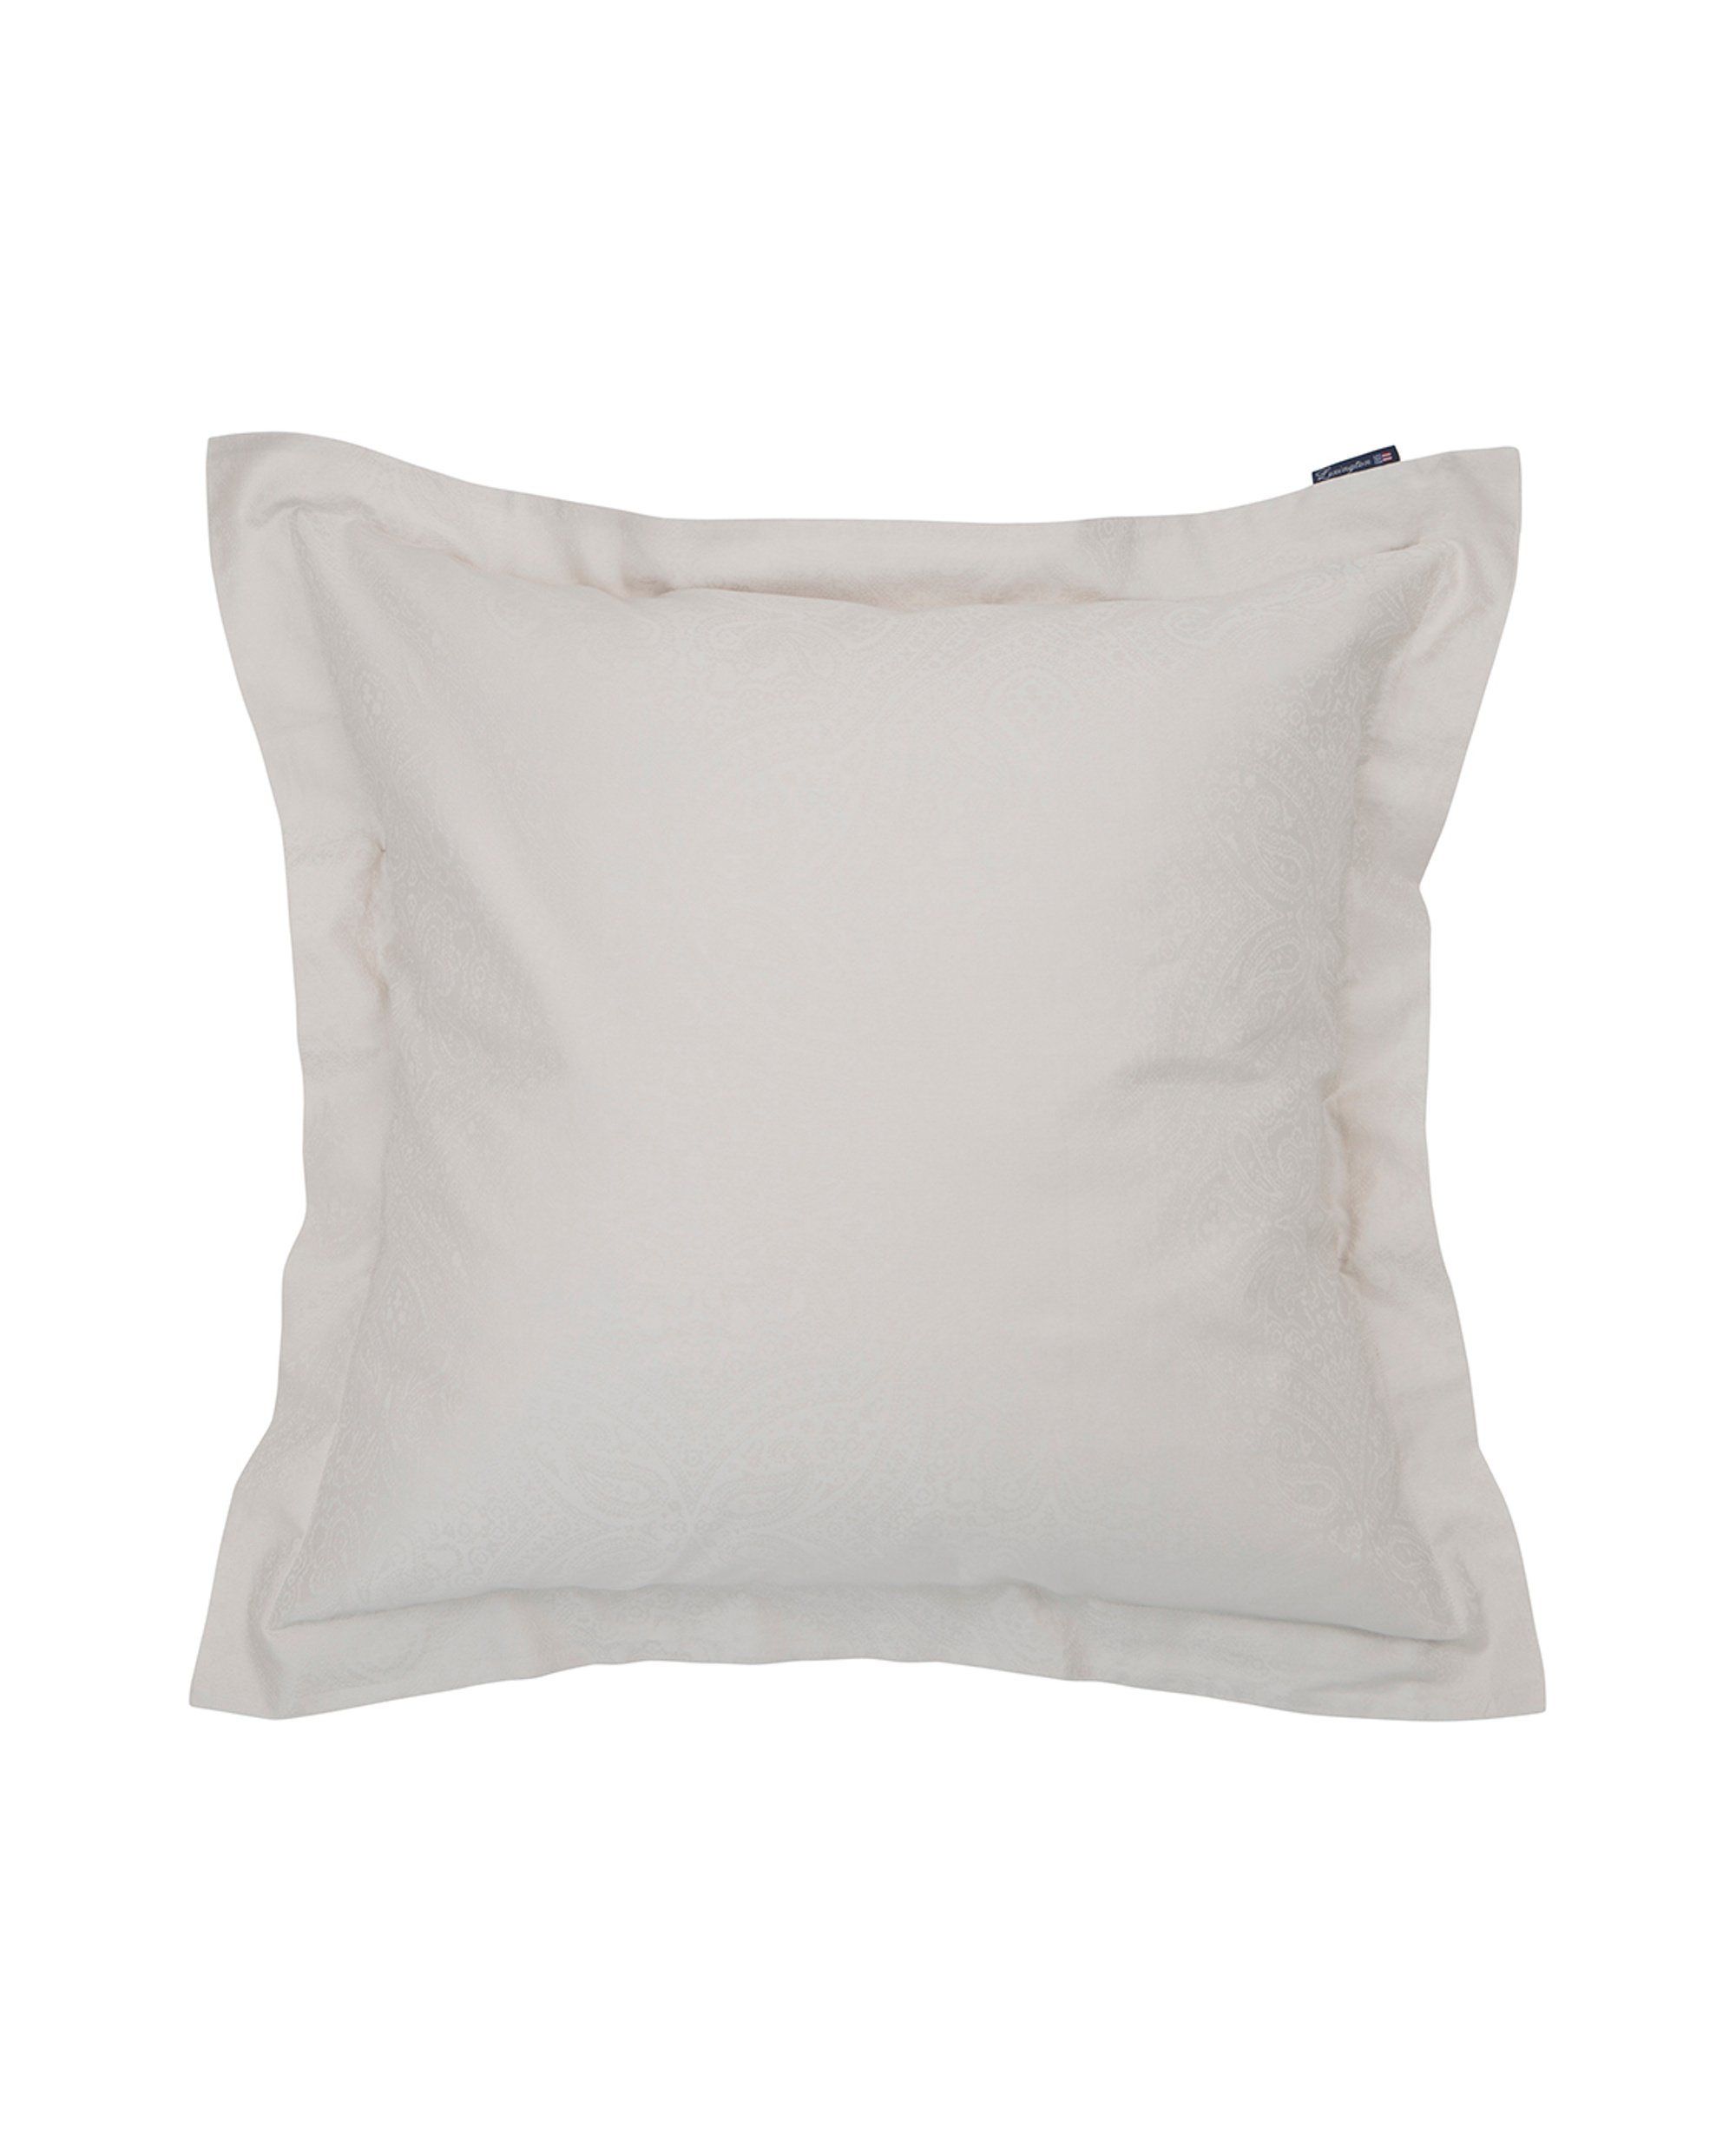 Hotel Sateen Jacquard Lt Beige Pillowcase